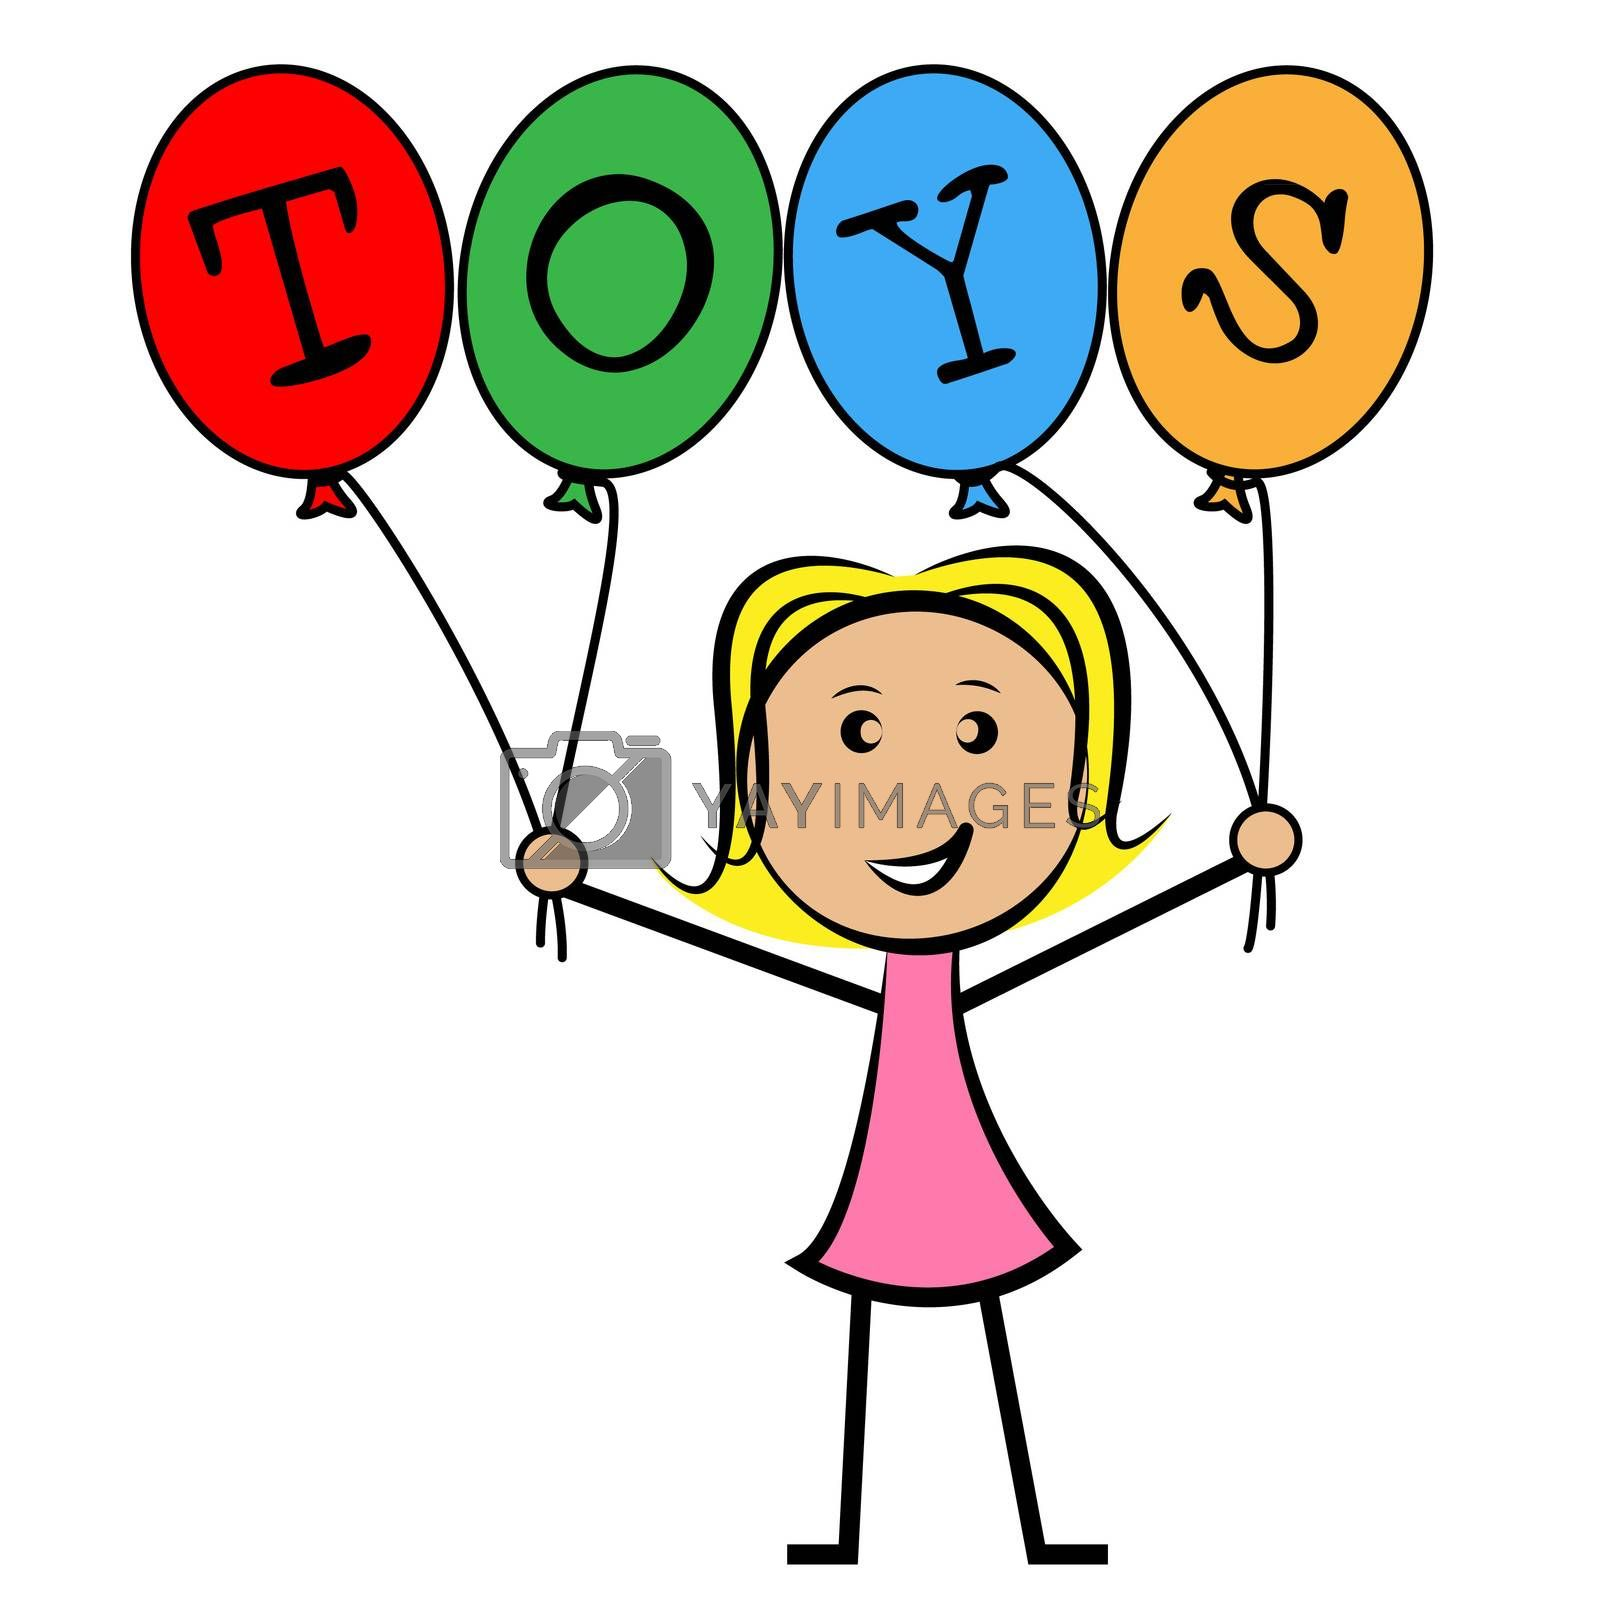 Toys Balloons Indicates Young Woman And Kids by stuartmiles